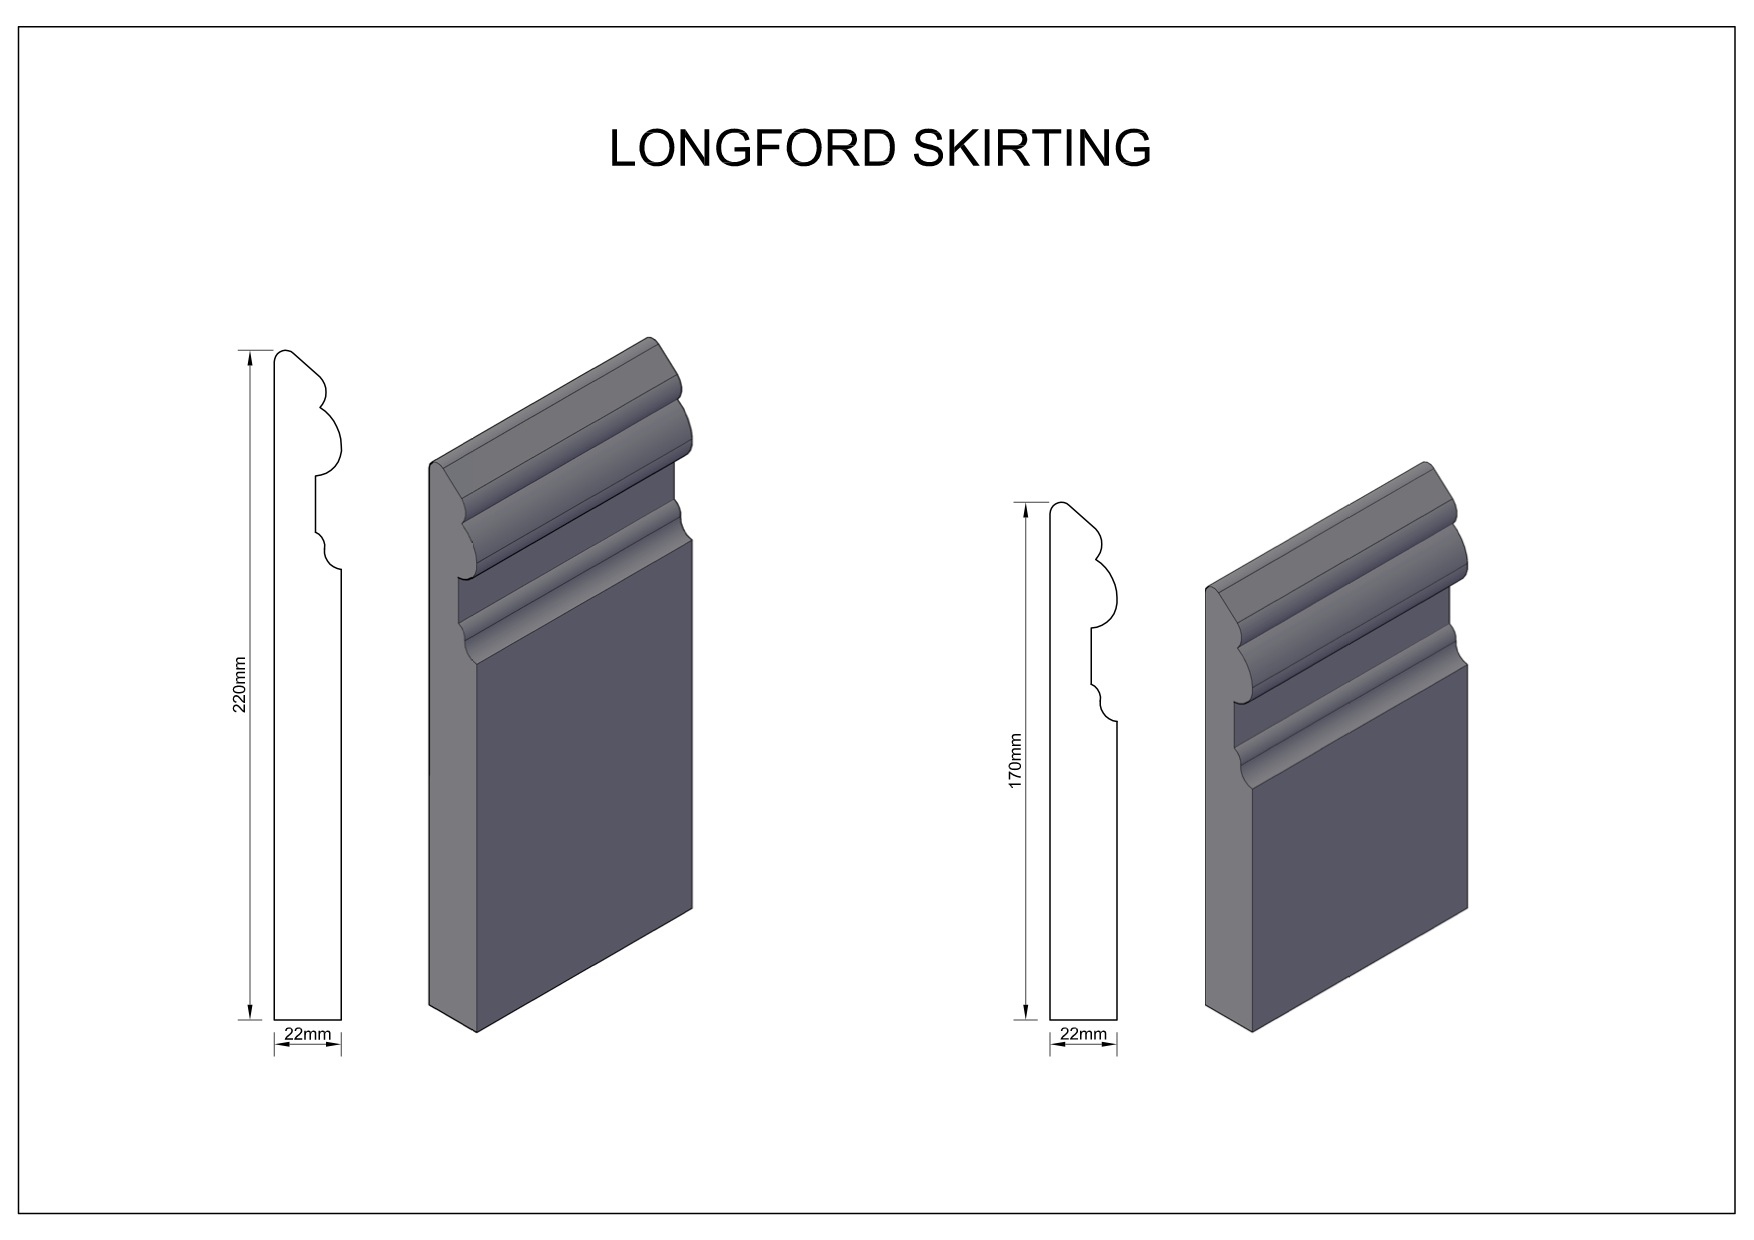 Longford-Skirting large